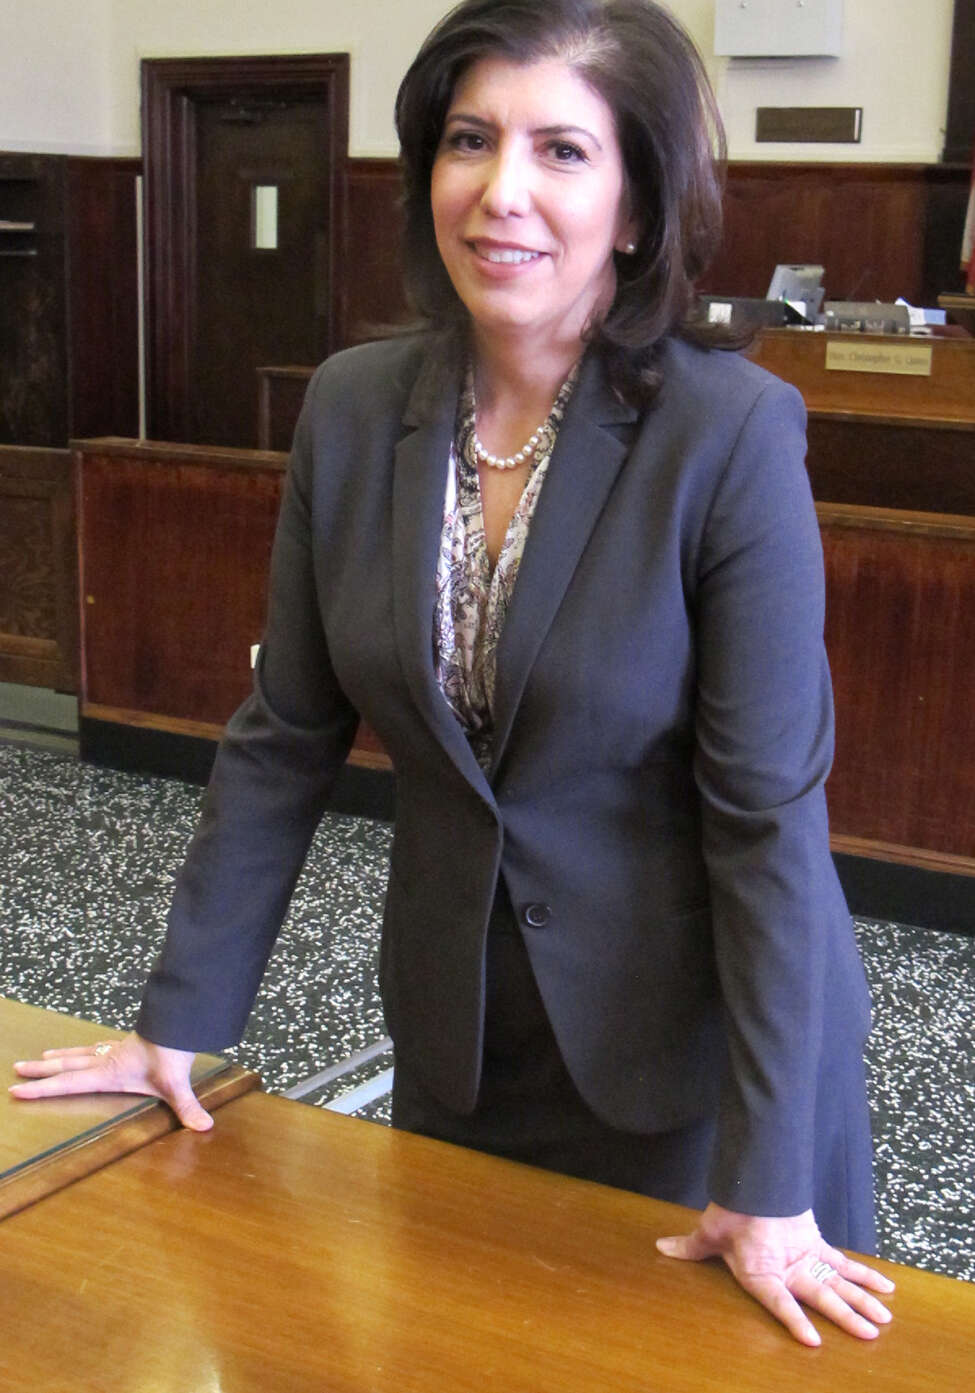 FILE- In this June 6, 2015 file photo, Madeline Singas poses in a Mineola, N.Y., courtroom moments after being sworn in as the acting district attorney for Nassau County. Singas said compliance with a state law requiring schools to report incidents of bullying, harassment or intimidation is a